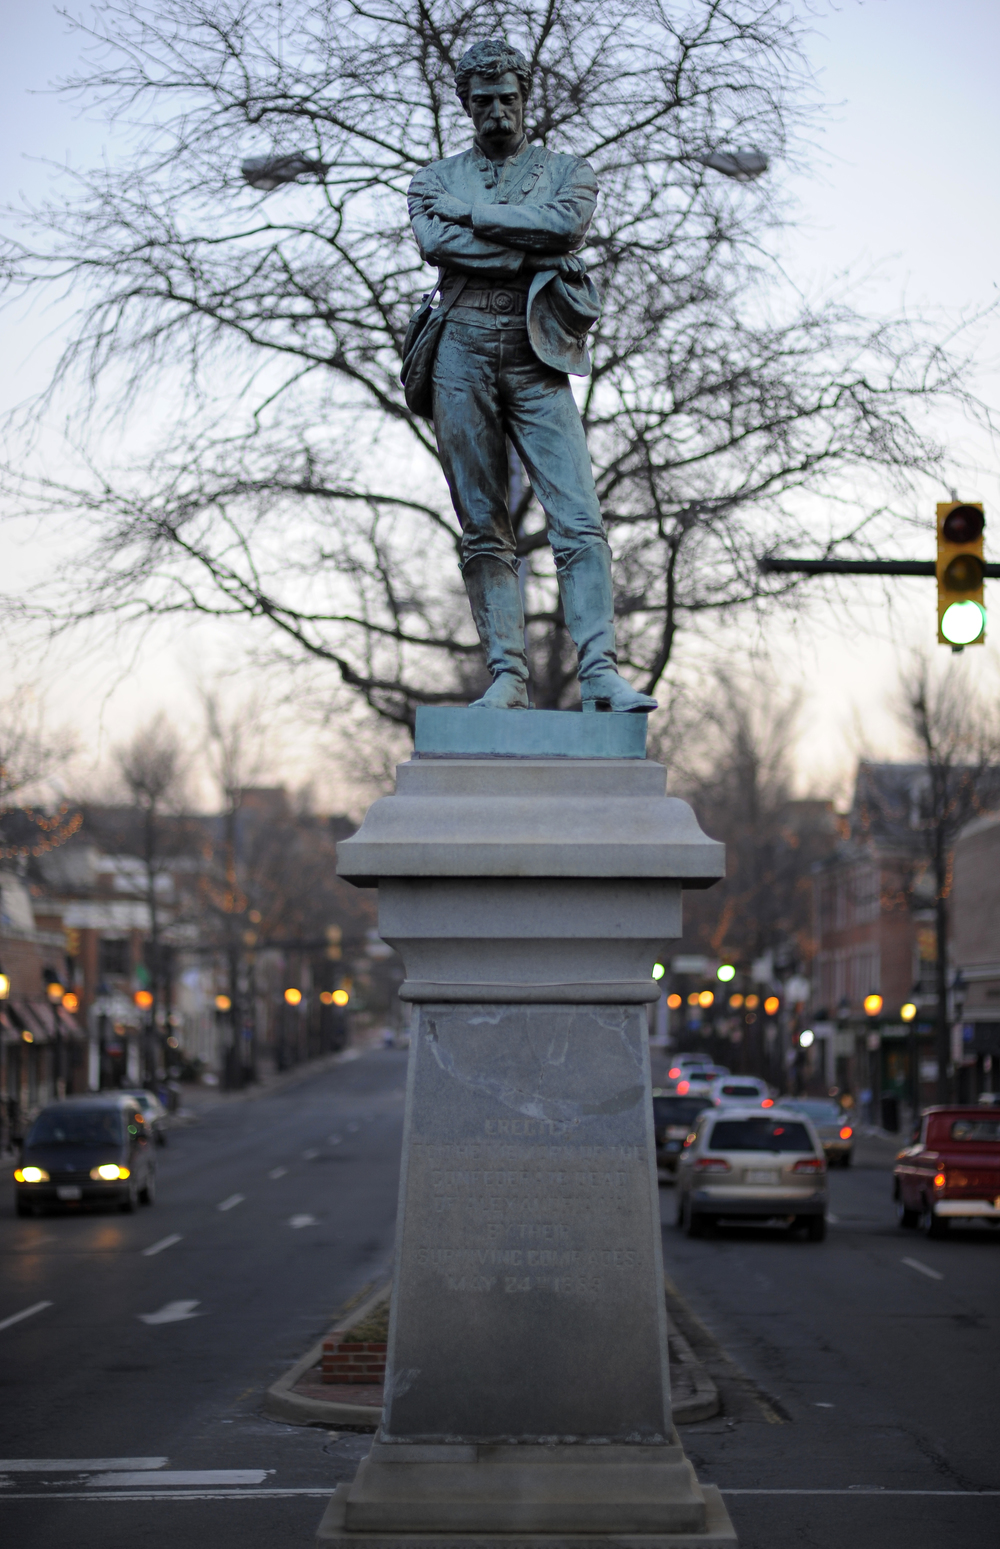 This Statue memorializing Confederate dead in downtown Alexandria, Virginia has come under review by city leaders (photo courtesy of John McDonnell & the Washington Post)